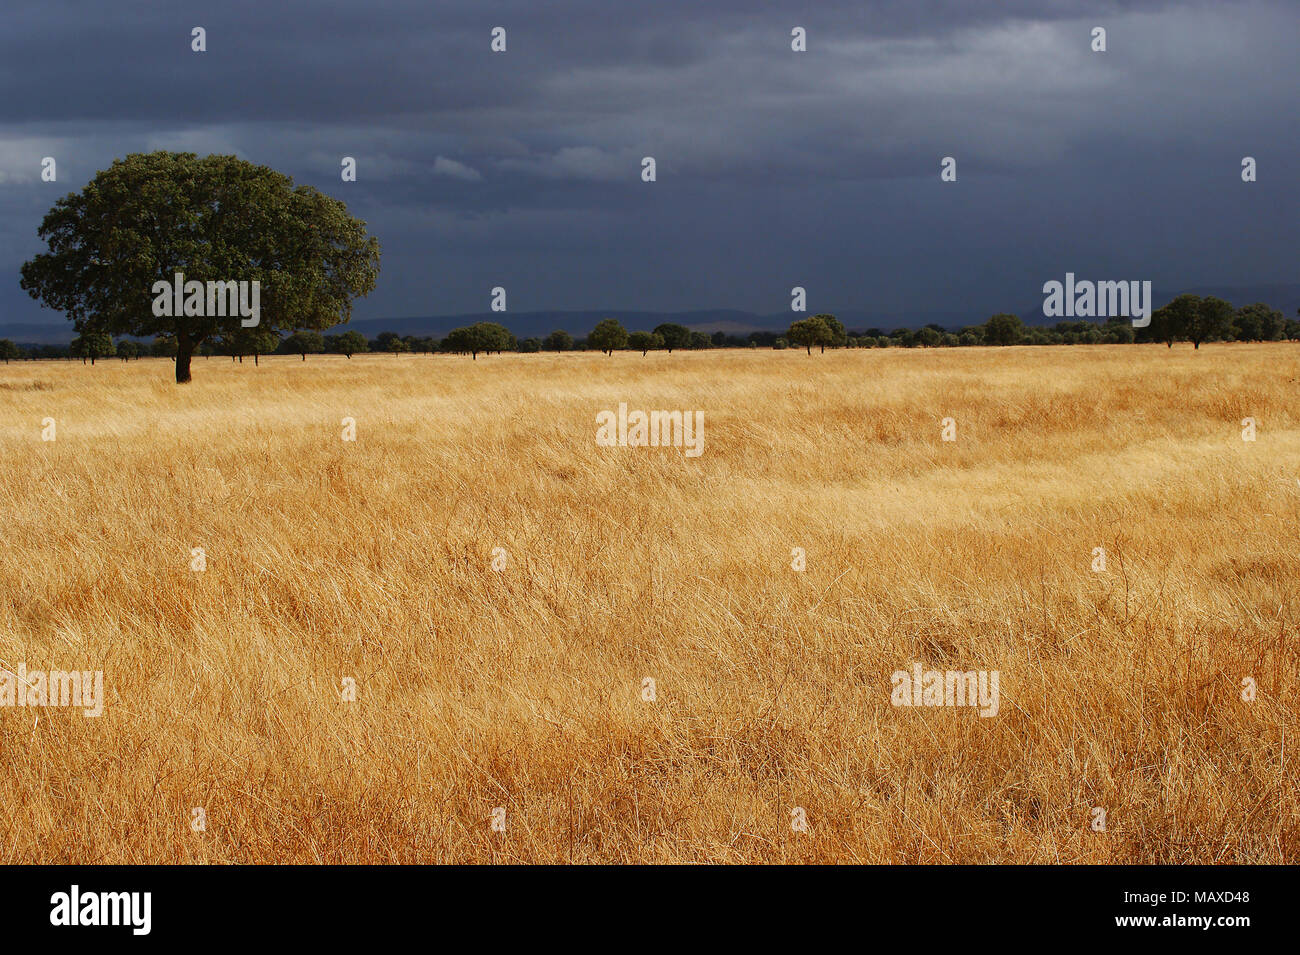 Picture taken in Cabañeros National Park, Spain - Stock Image